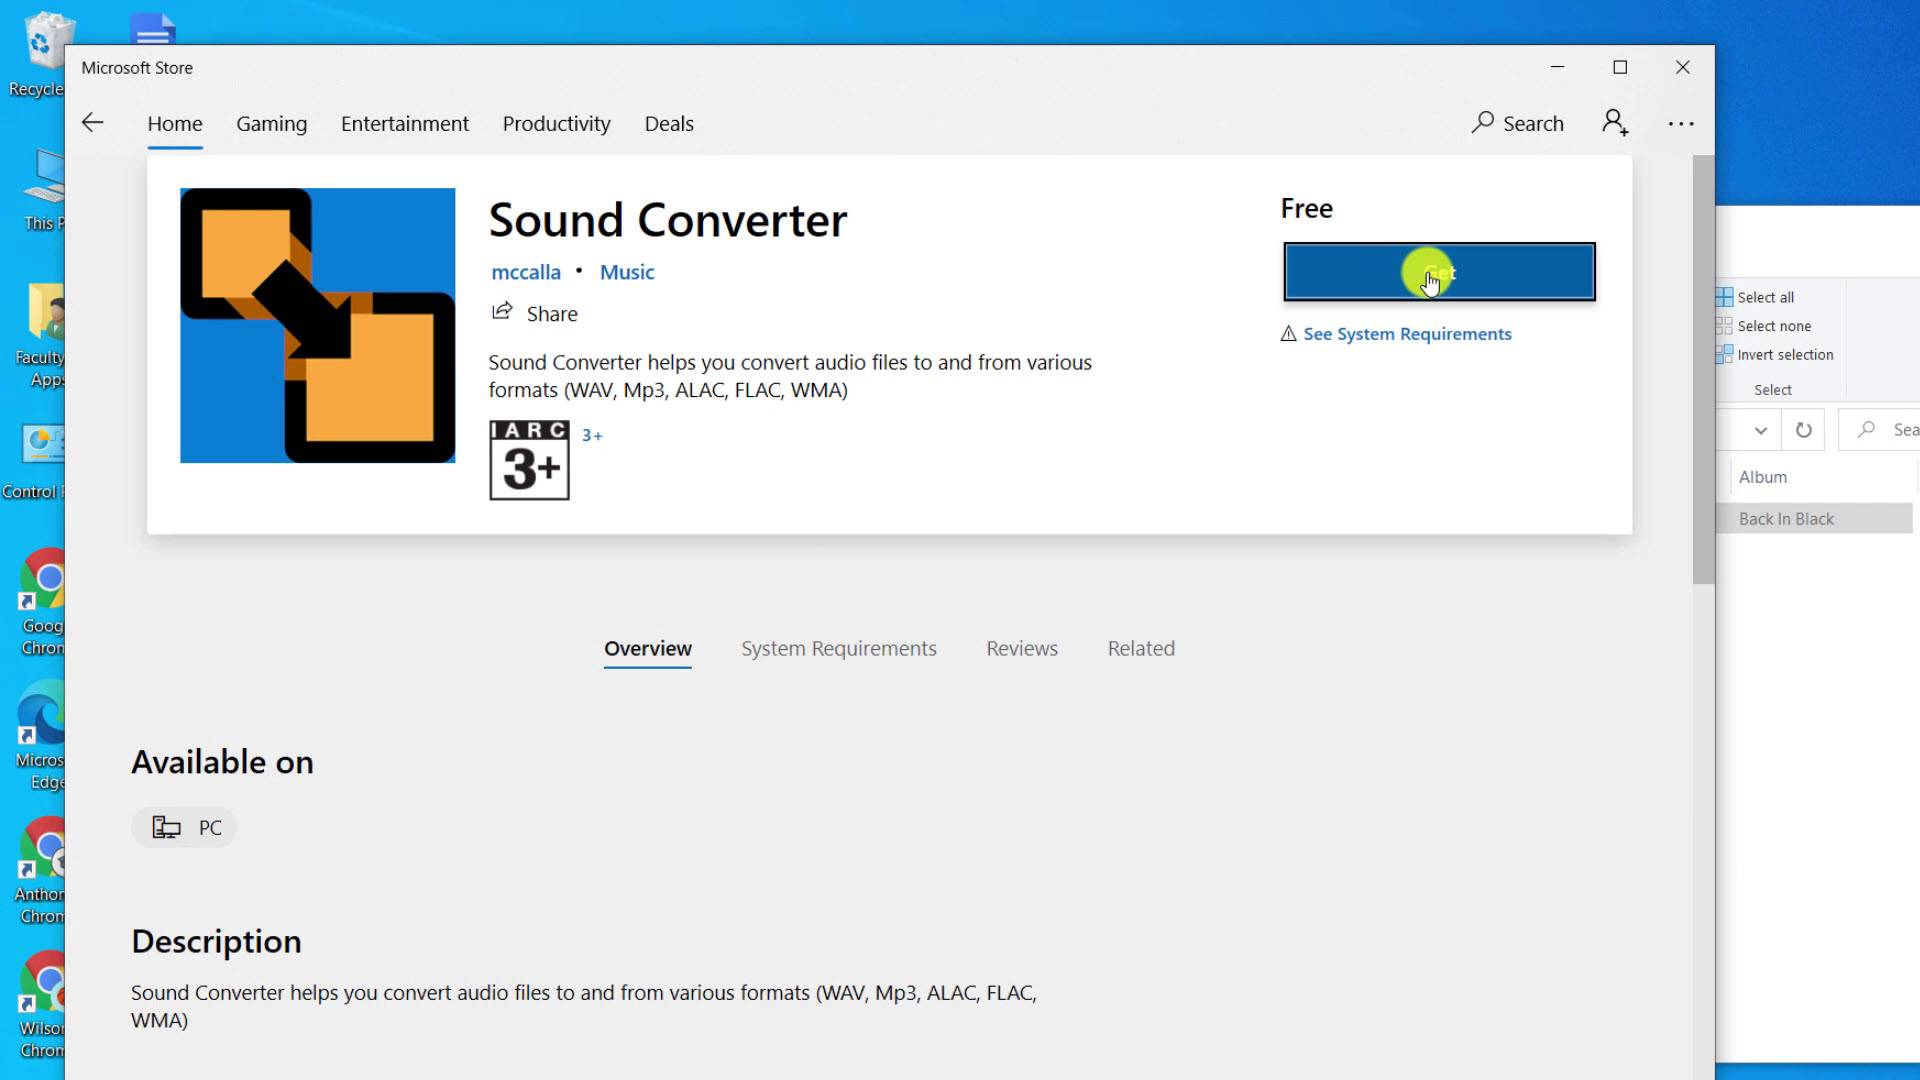 Sound Converter app page on the Microsoft app store